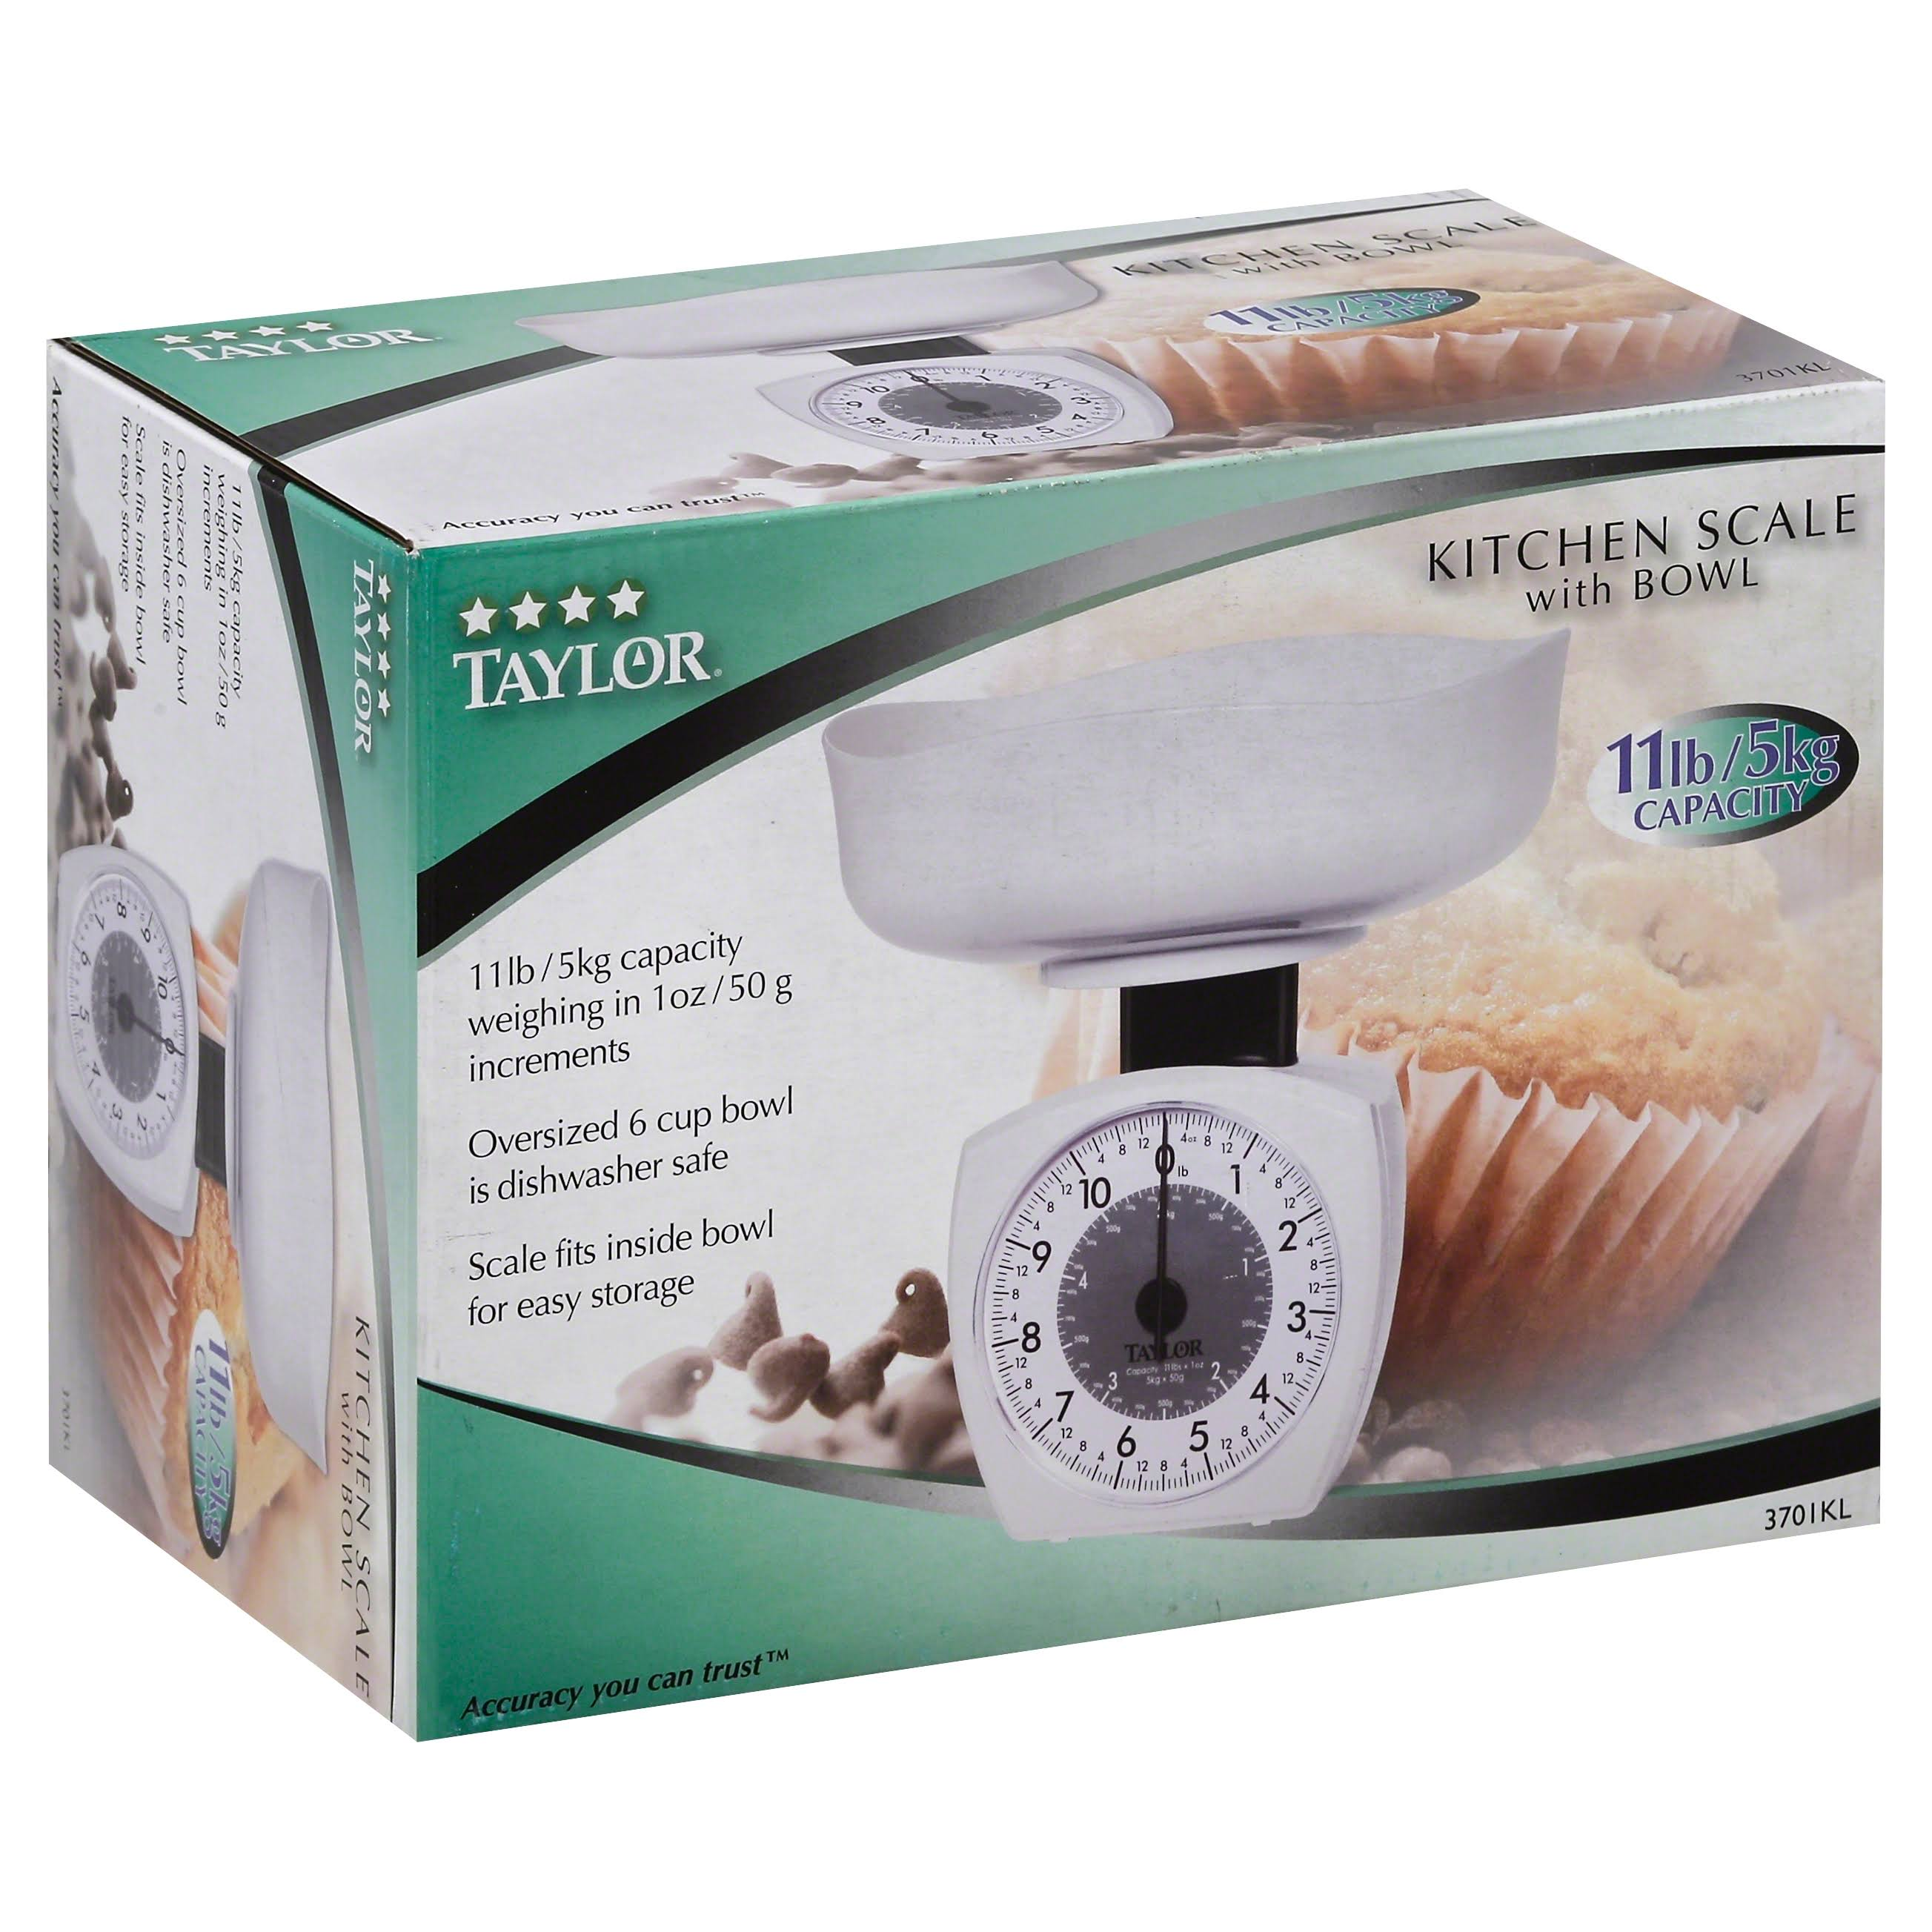 Taylor Kitchen Food Scale - 11lb